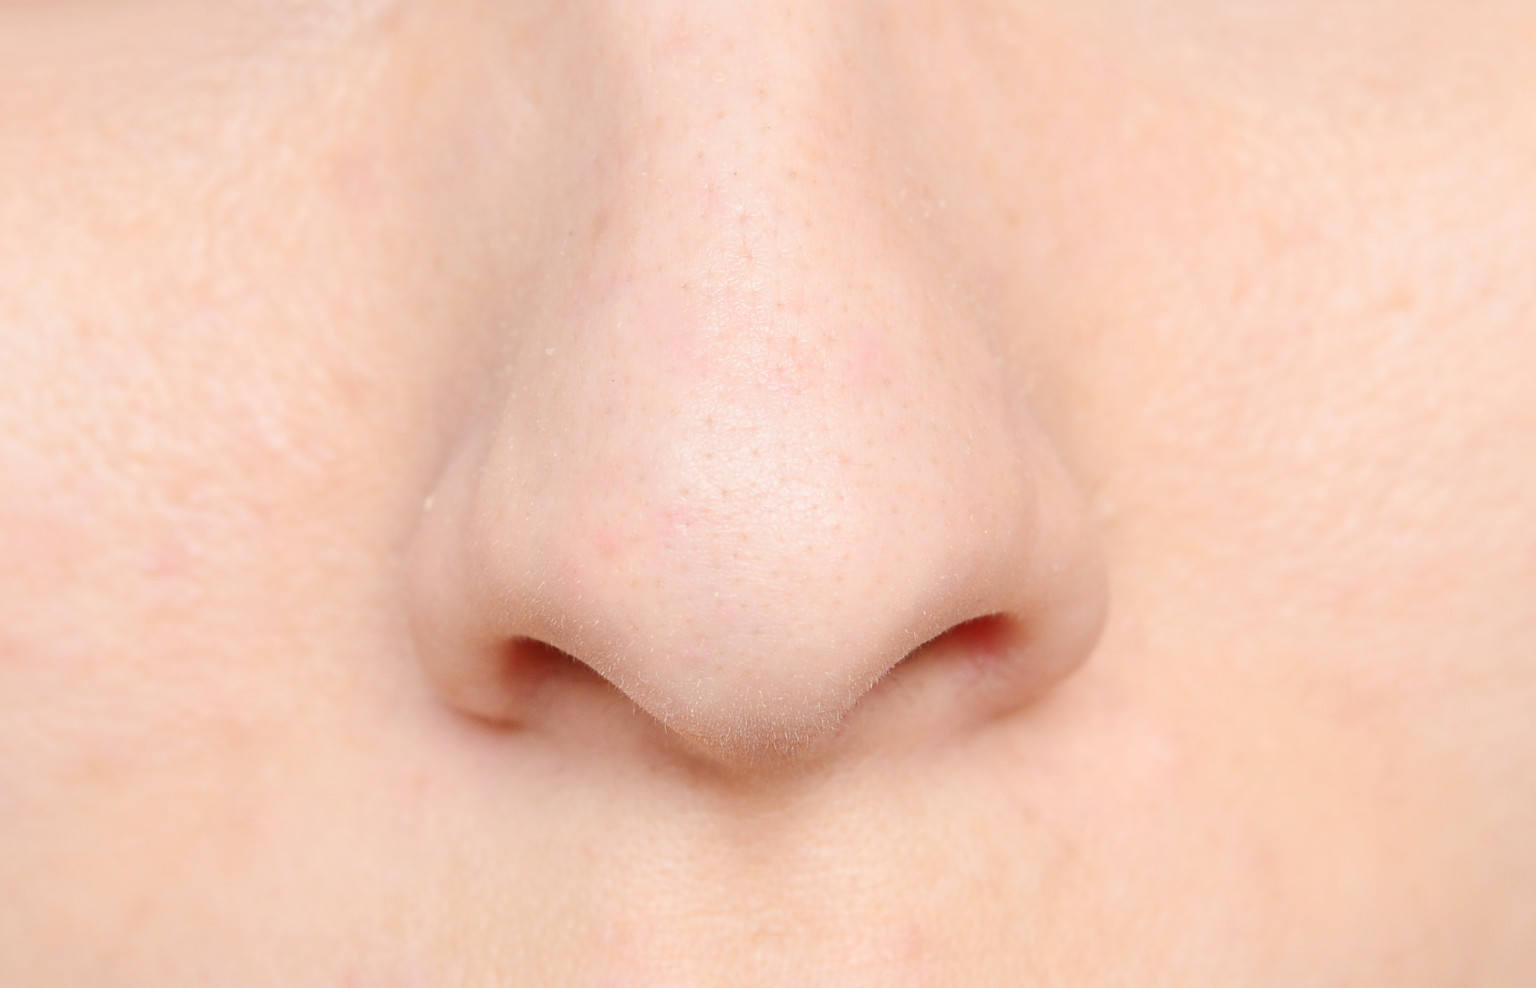 Nose Anatomy Stock Images, Royalty-Free ... - Shutterstock